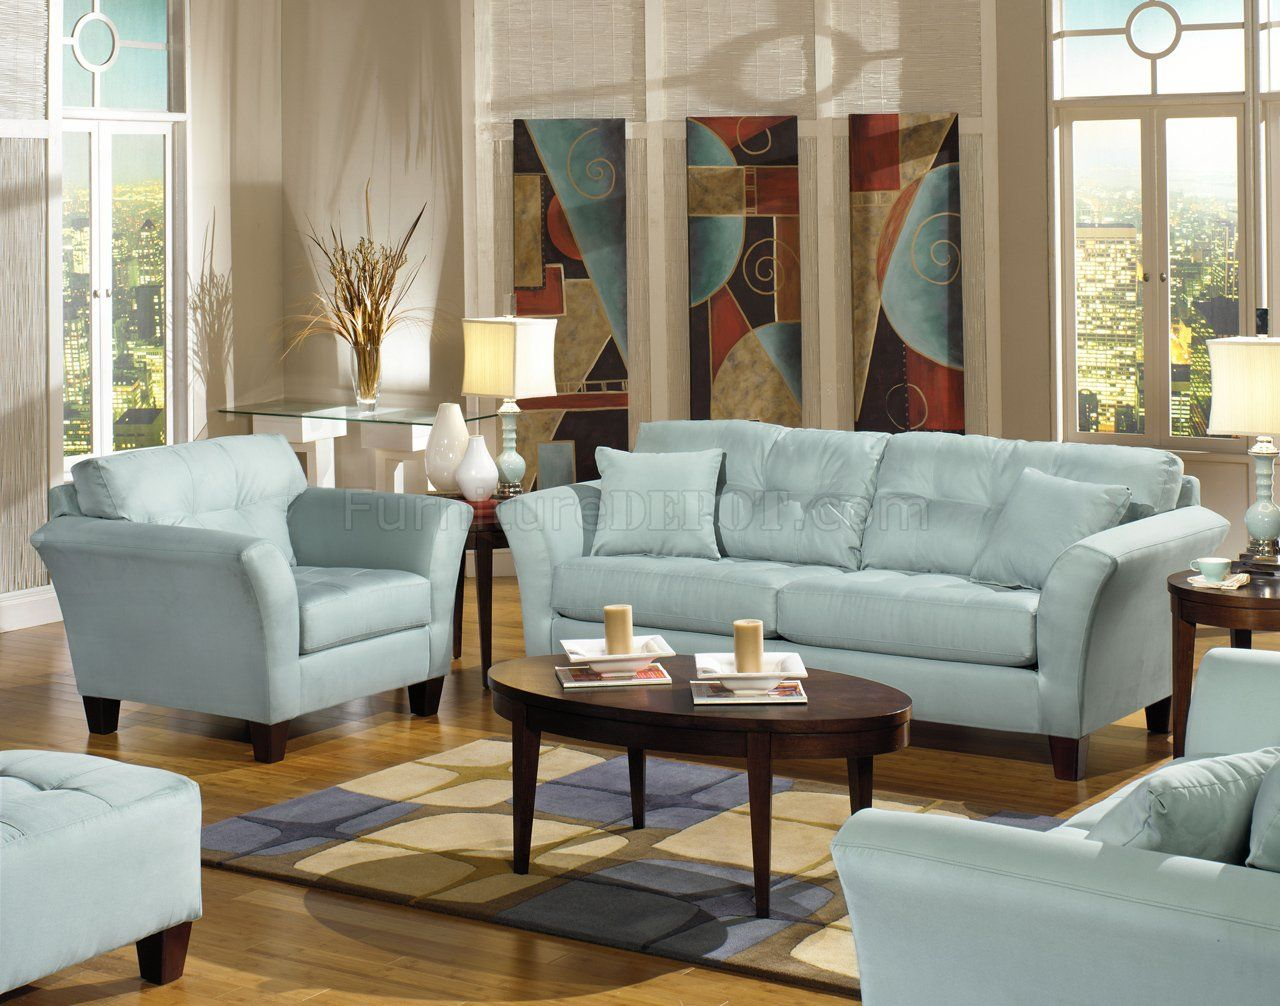 Light Blue Leather Sofa Set For Elegant Living Room Interior Decorating Ideas With Wooden Coffee Blue Sofas Living Room Blue Sofa Living Light Blue Living Room